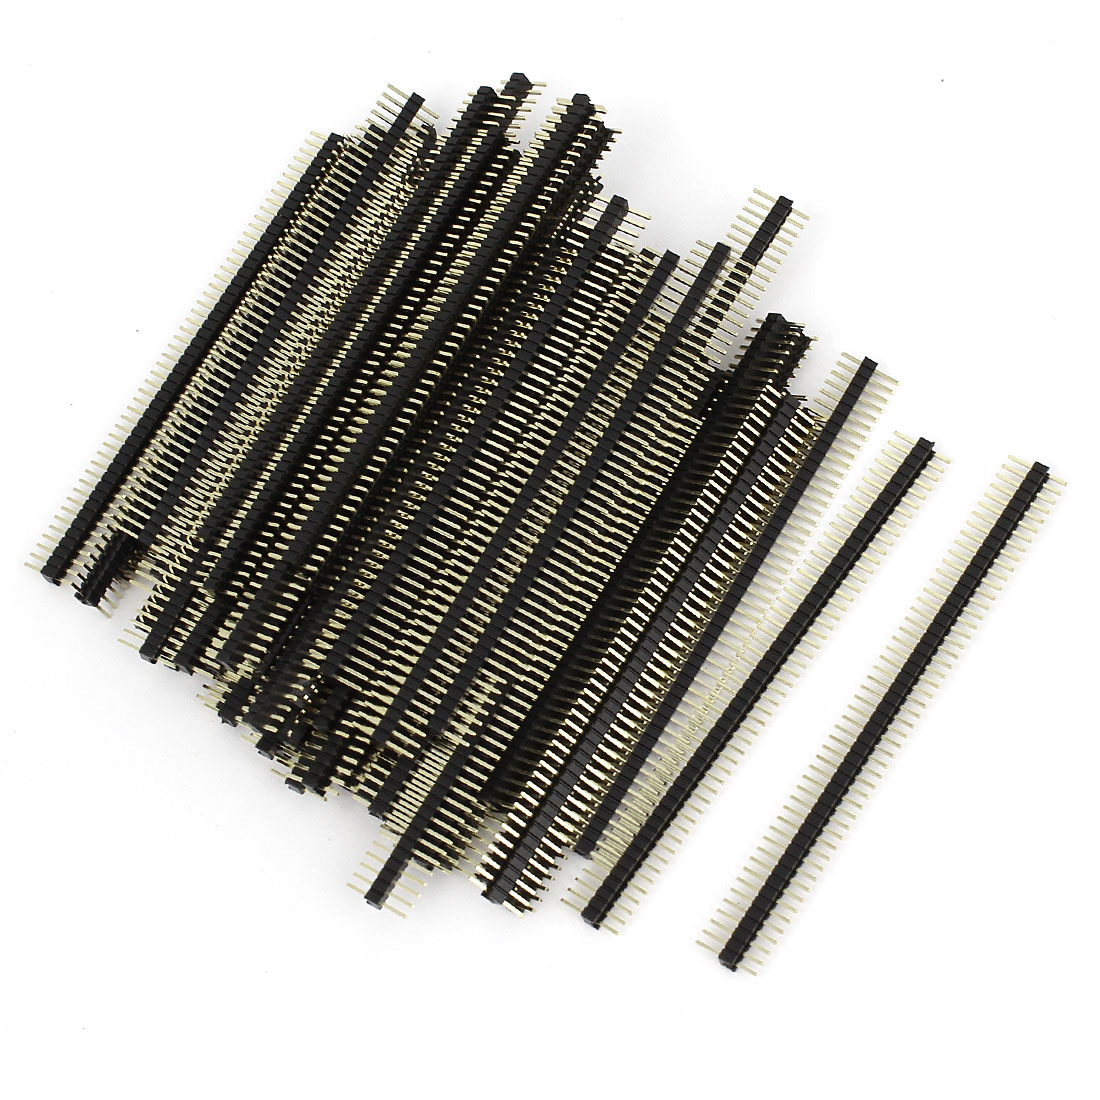 60Pcs 50 Position 1.27mm Pitch Single Row Straight Pin Header Strip